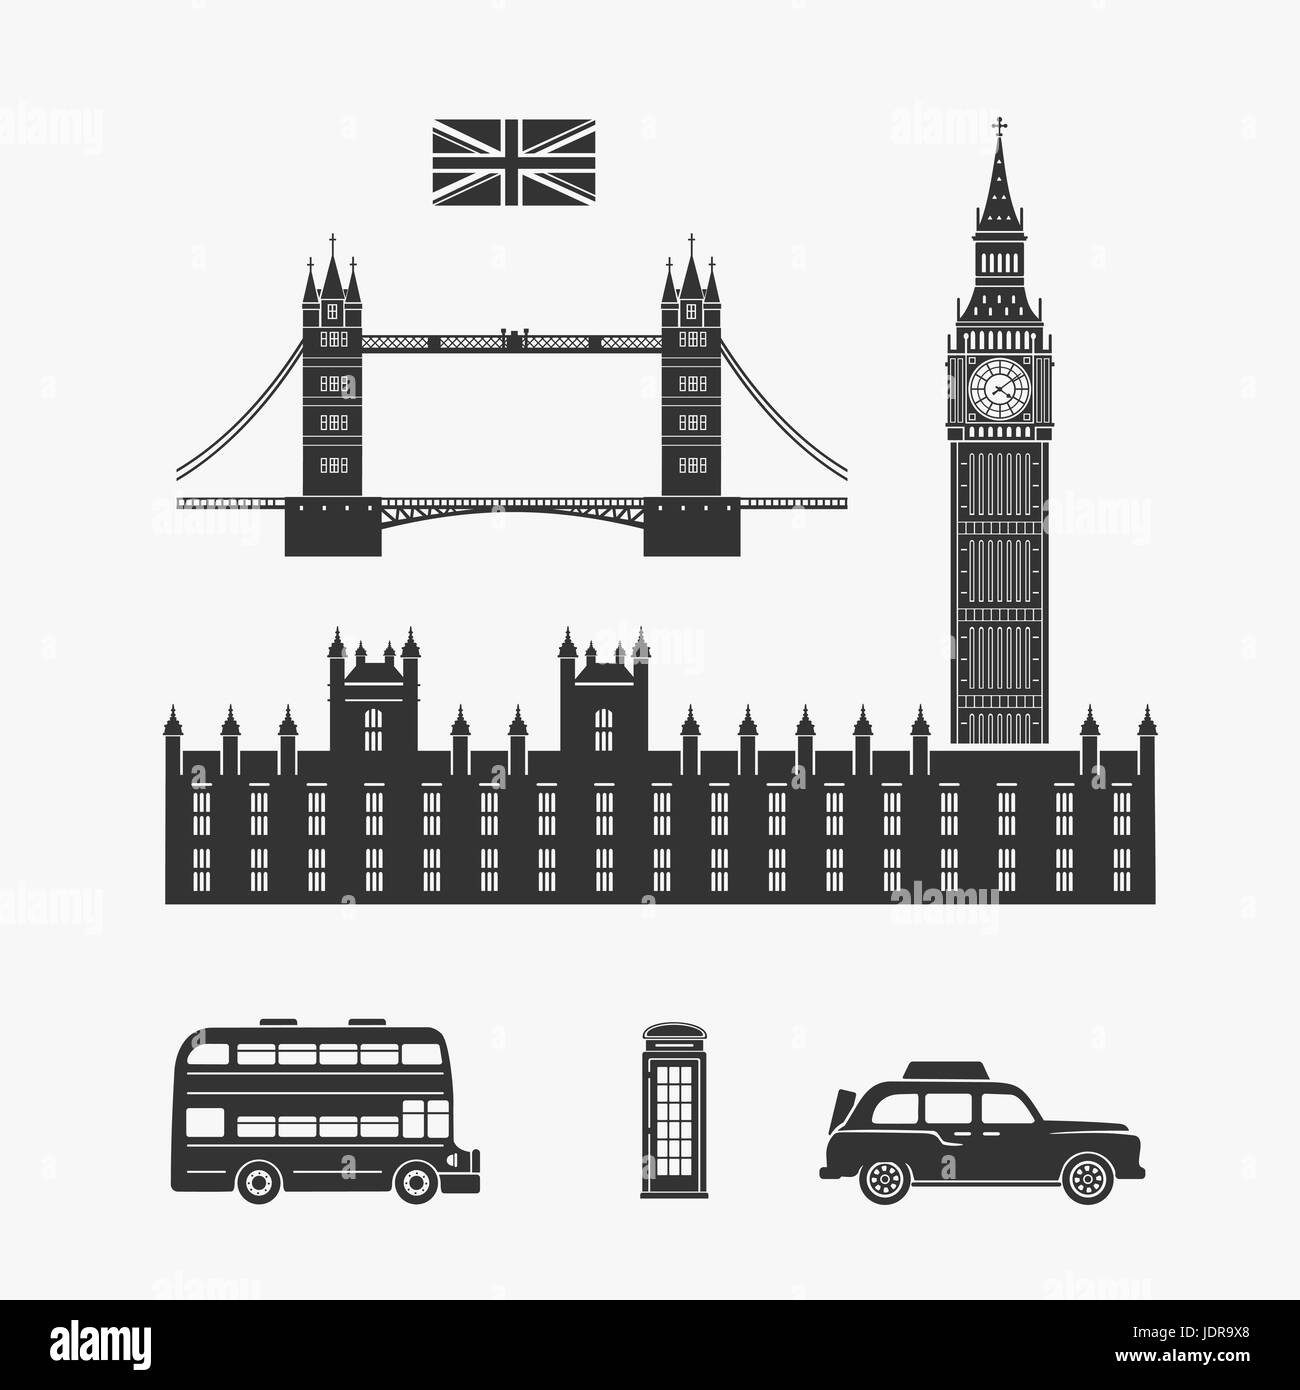 England London Vector Elements - Stock Image